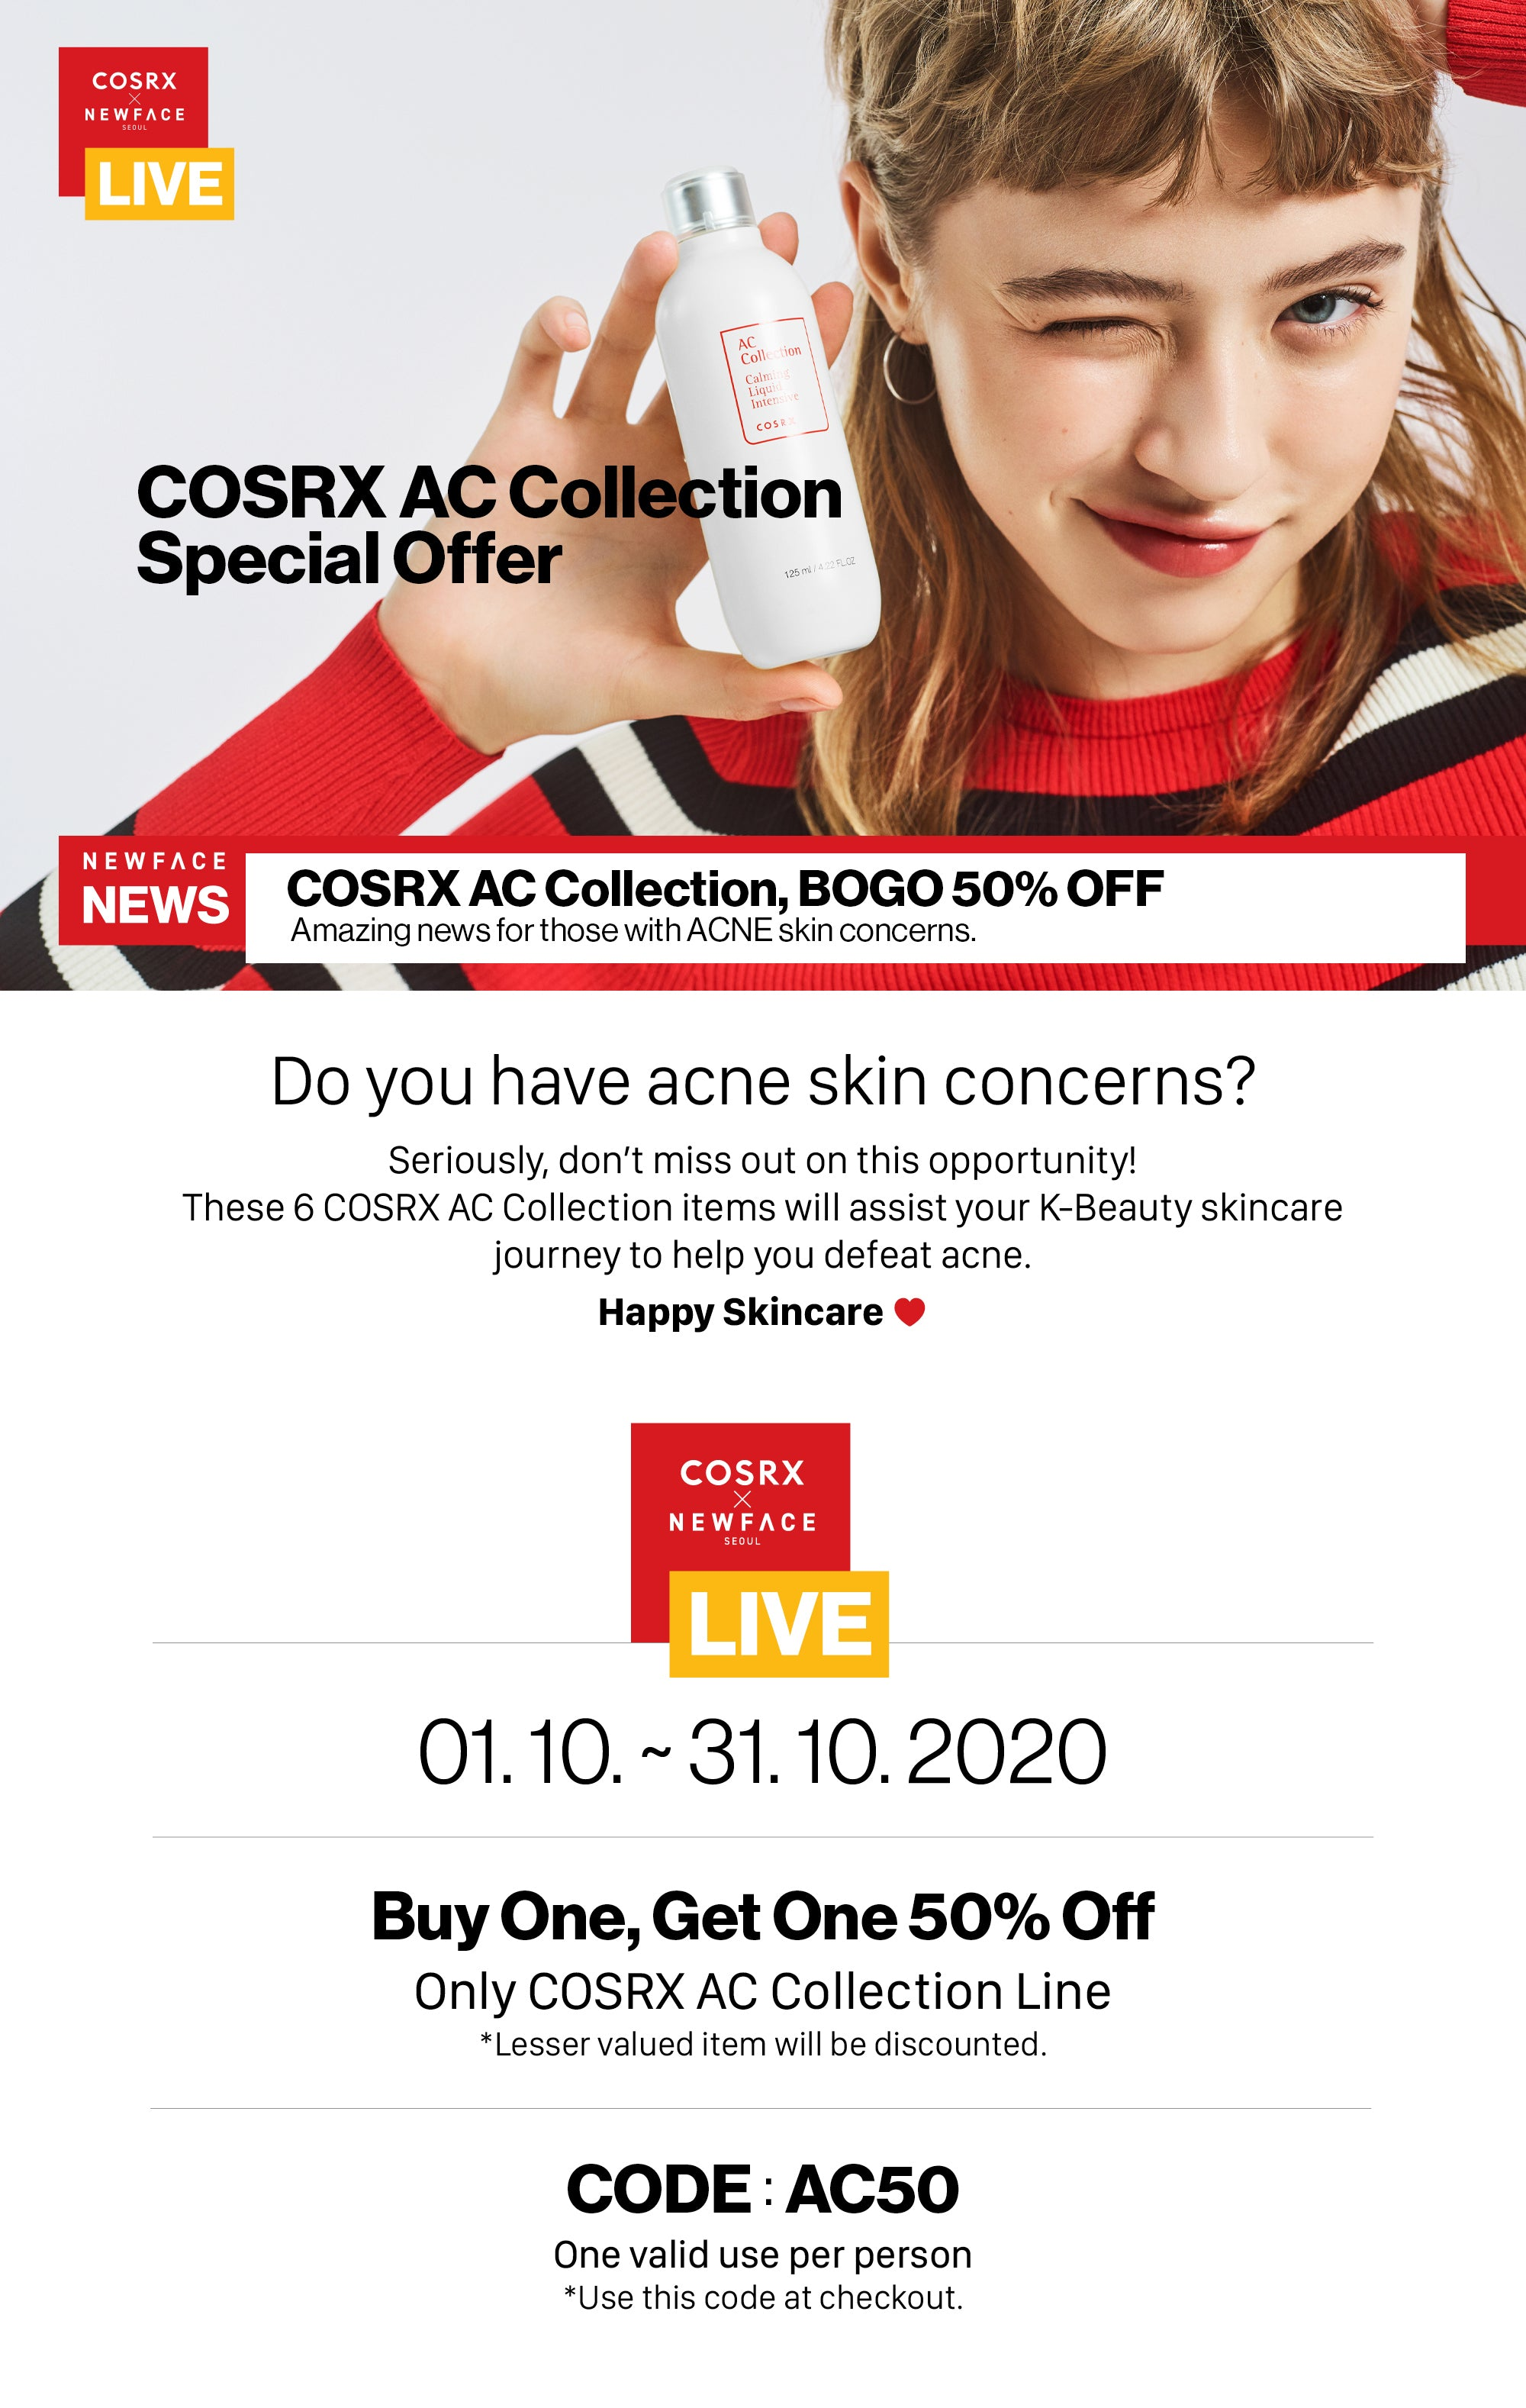 COSRX AC Collection Special - Do you have acne skin concerns?  Seriously, don't miss out on this opportunity! These 6 COSRX AC Collection items will assist your K-Beauty skincare journey to help you defeat acne.   Happy Skincare ♥